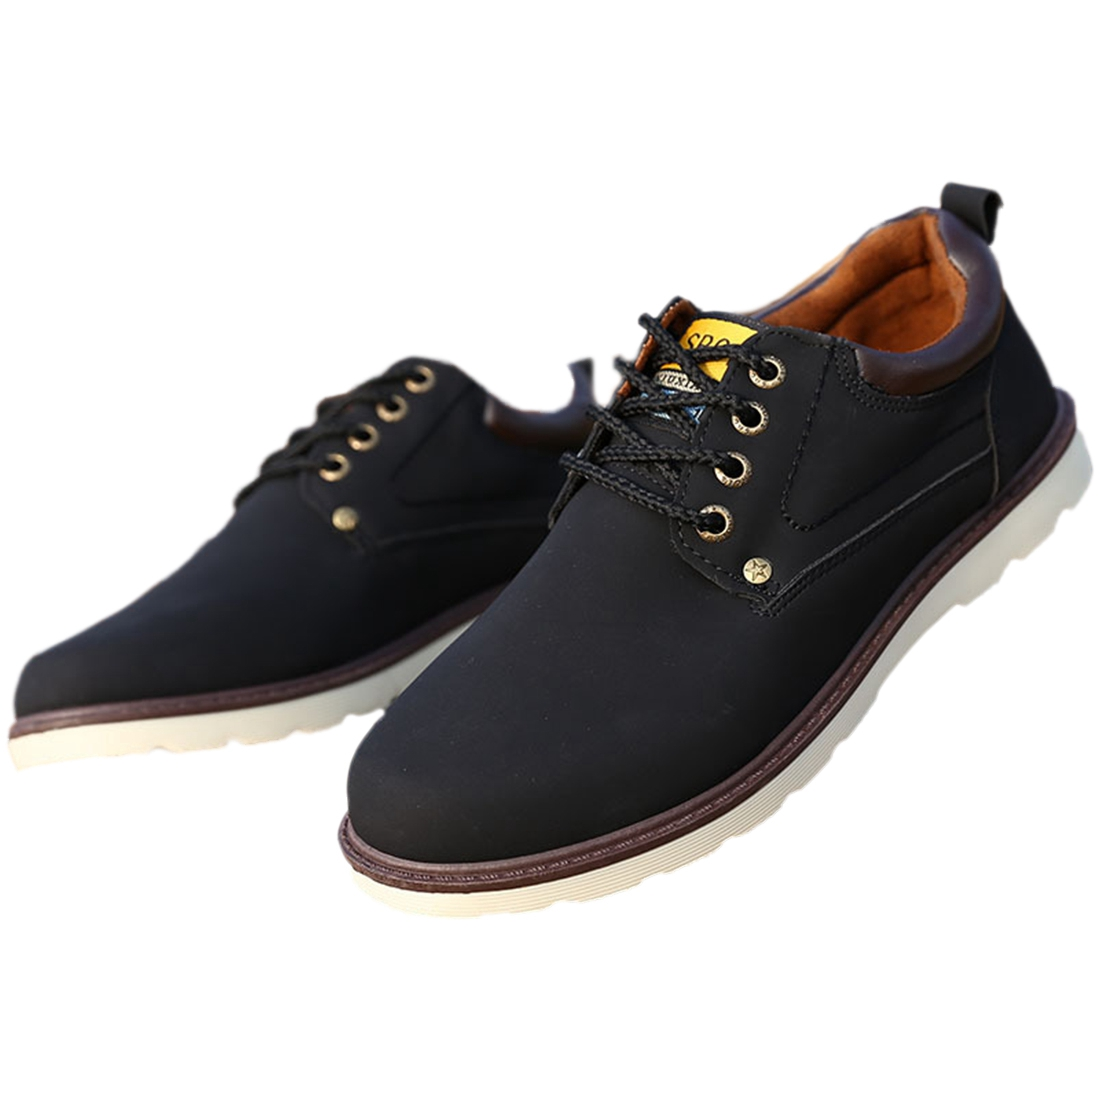 New Boots Summer Cool&Winter Warm shoes for men Leather Shoes Mens Flats Shoes Low Men casual shoess For Men Oxford